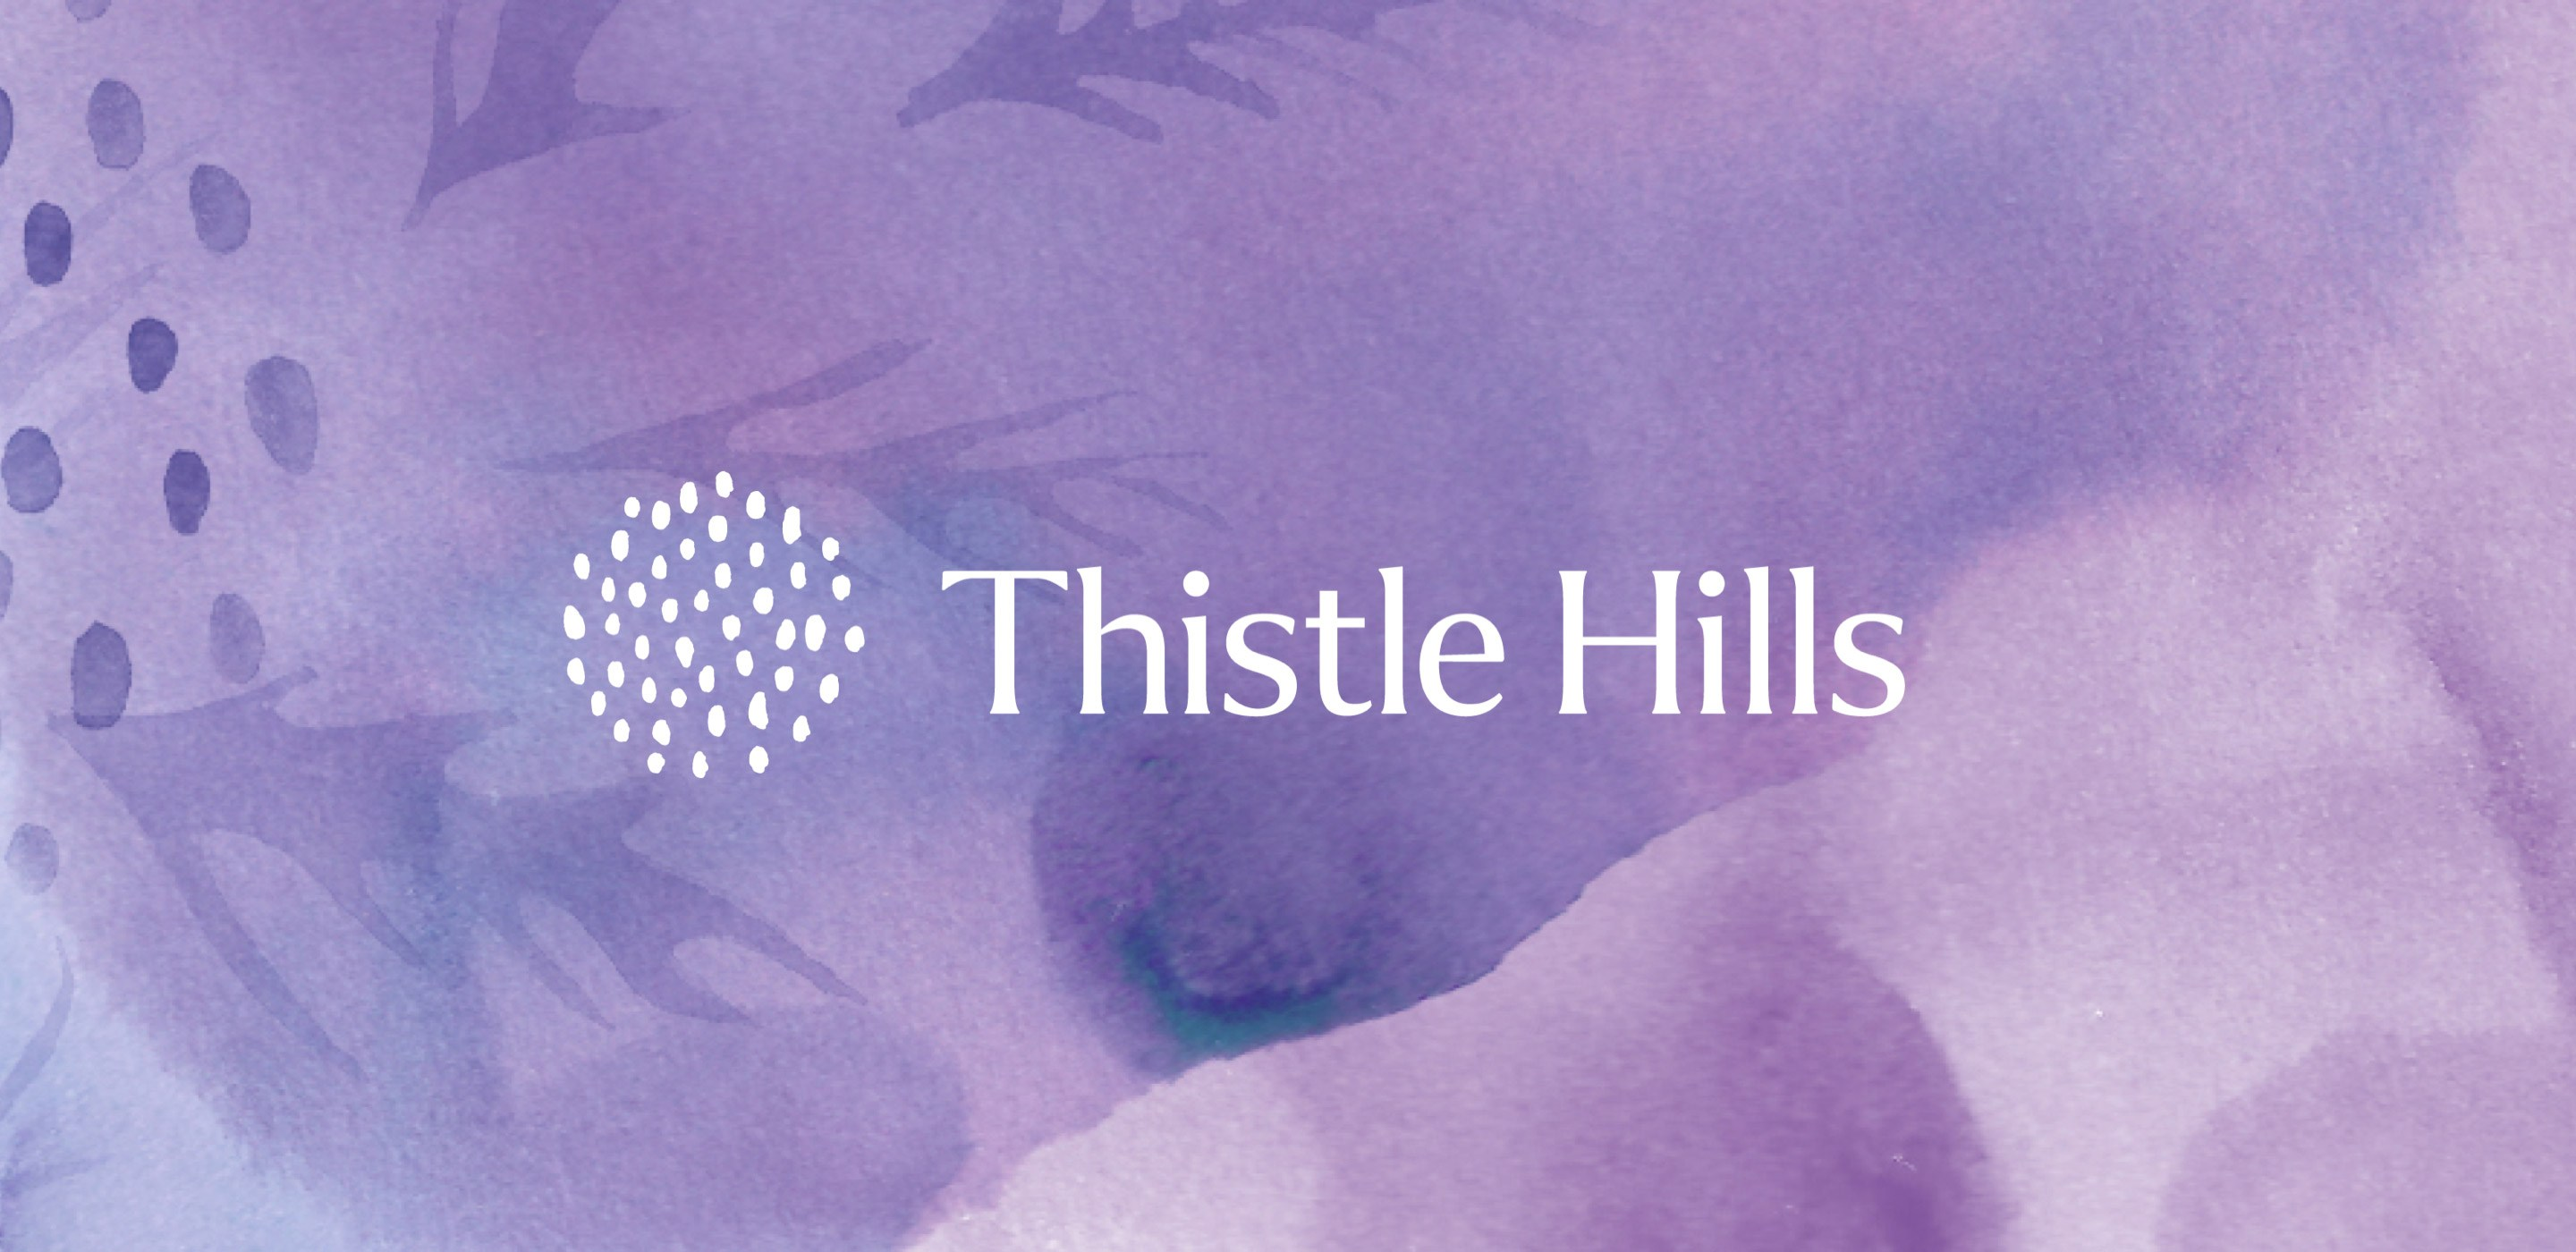 Thistle hills 02 A